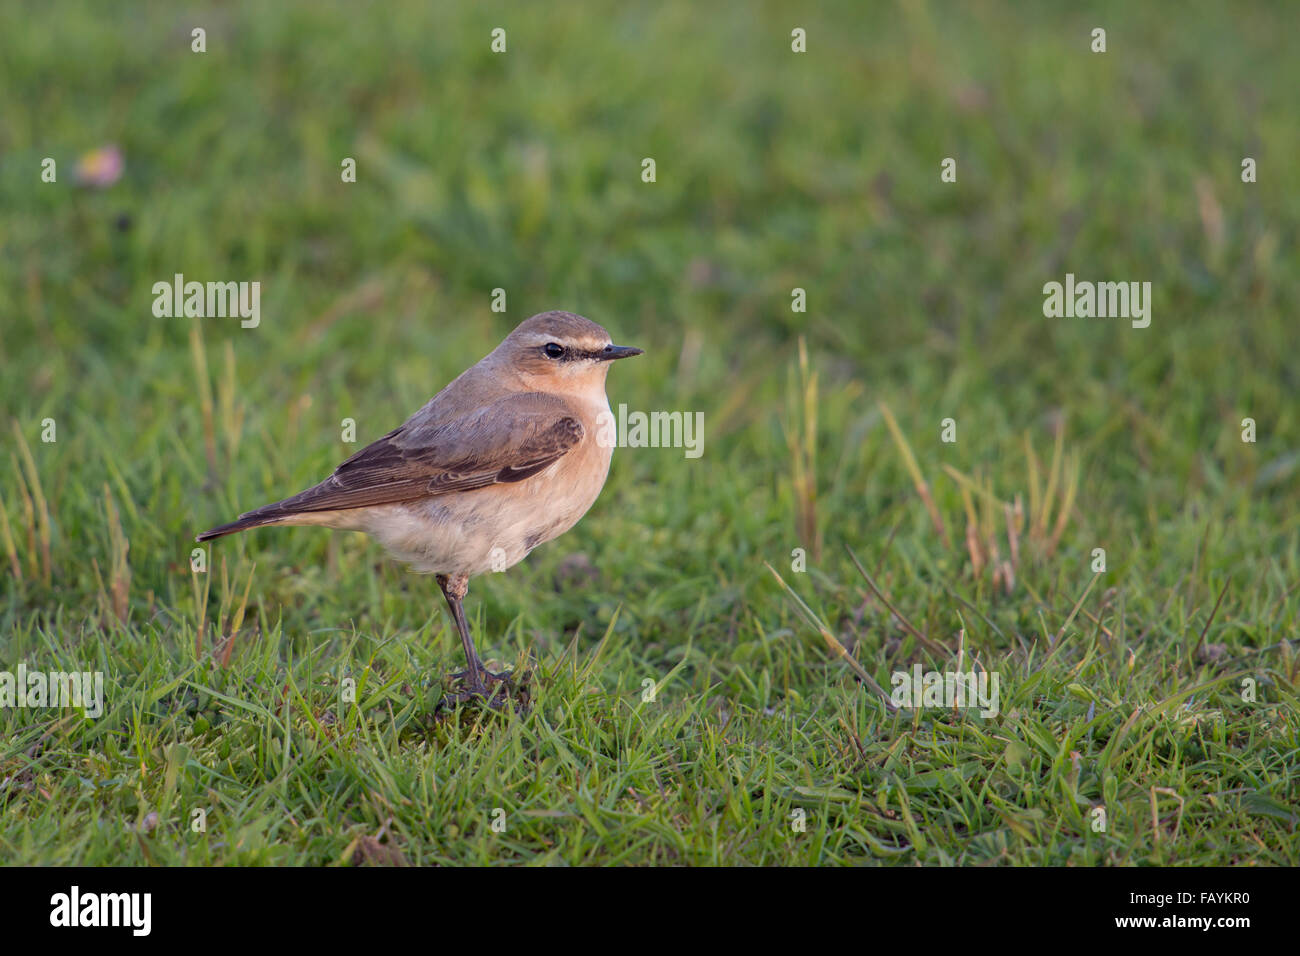 Northern Wheatear / Steinschmaetzer ( Oenanthe oenanthe ) in typical environment, stands on top of a little mound Stock Photo